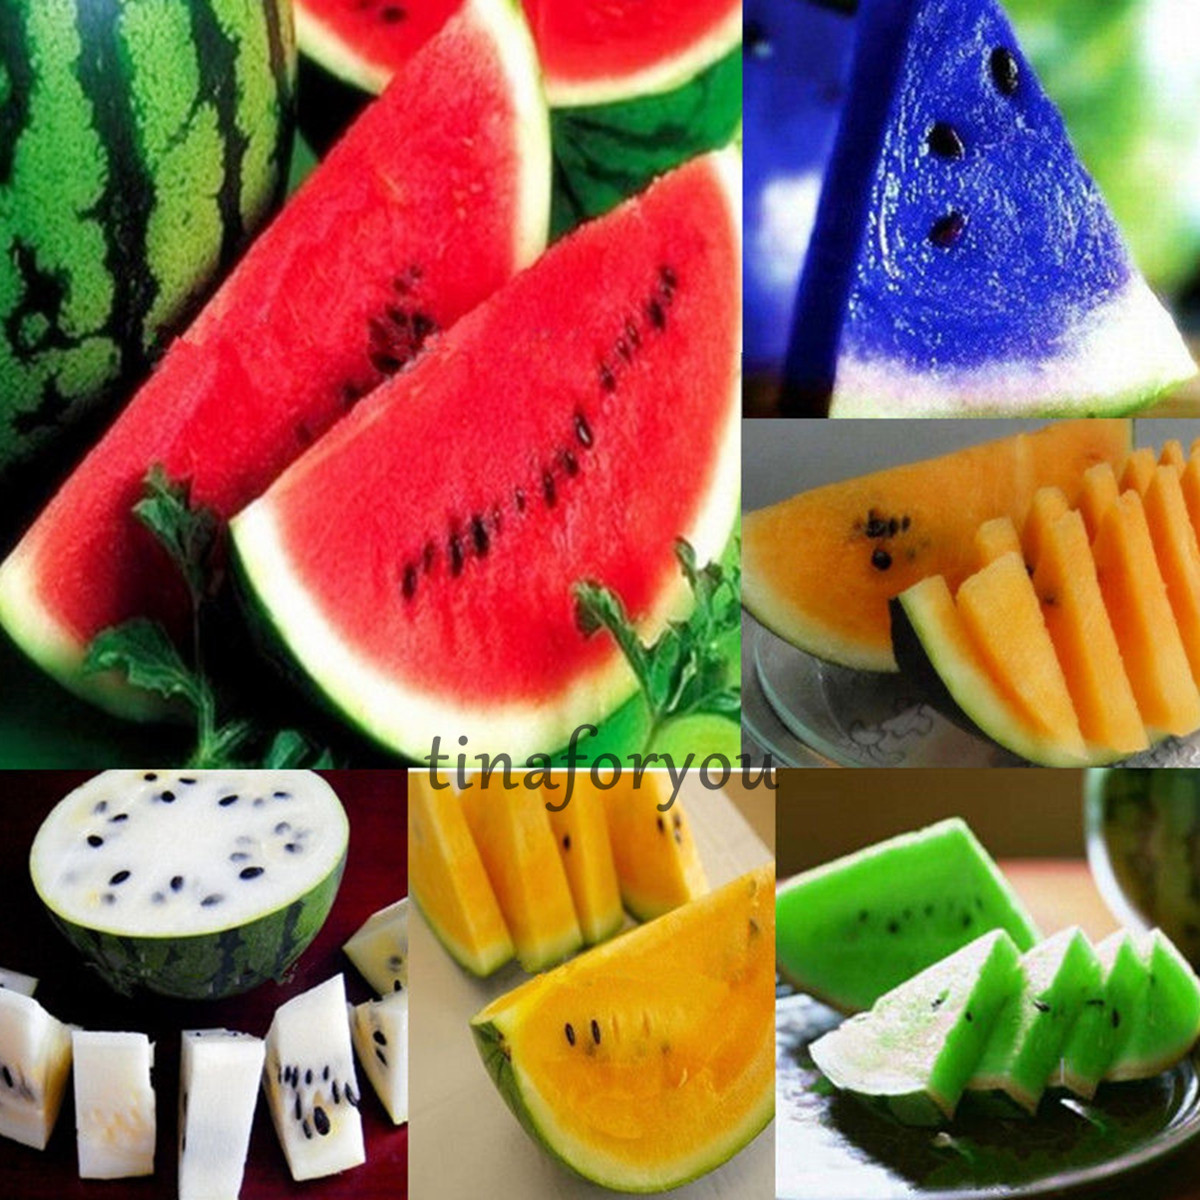 10pc Rare Sweet Watermelon Seeds Vegetable Fruits Seed New ...